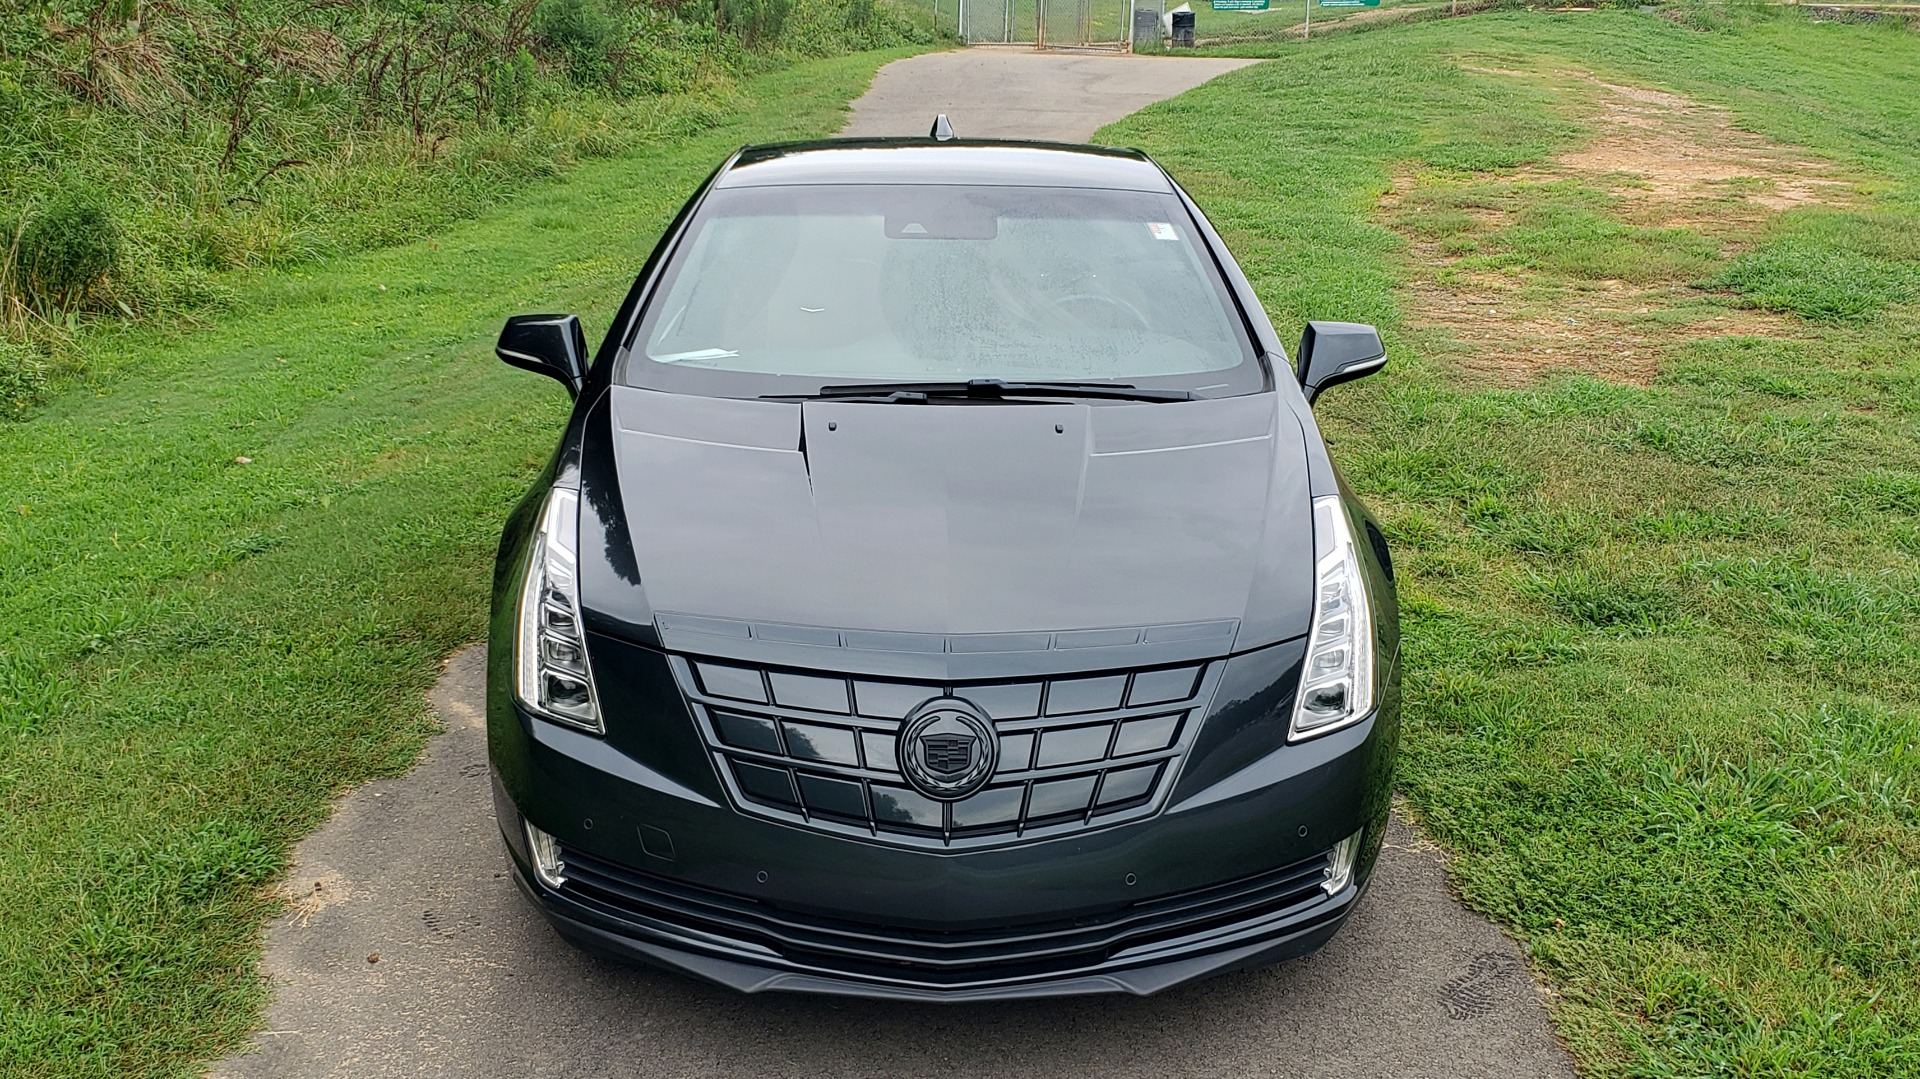 Used 2014 Cadillac ELR 2DR COUPE / HYBRID / NAV / BOSE / HEATED SEATS / REARVIEW for sale $34,000 at Formula Imports in Charlotte NC 28227 10